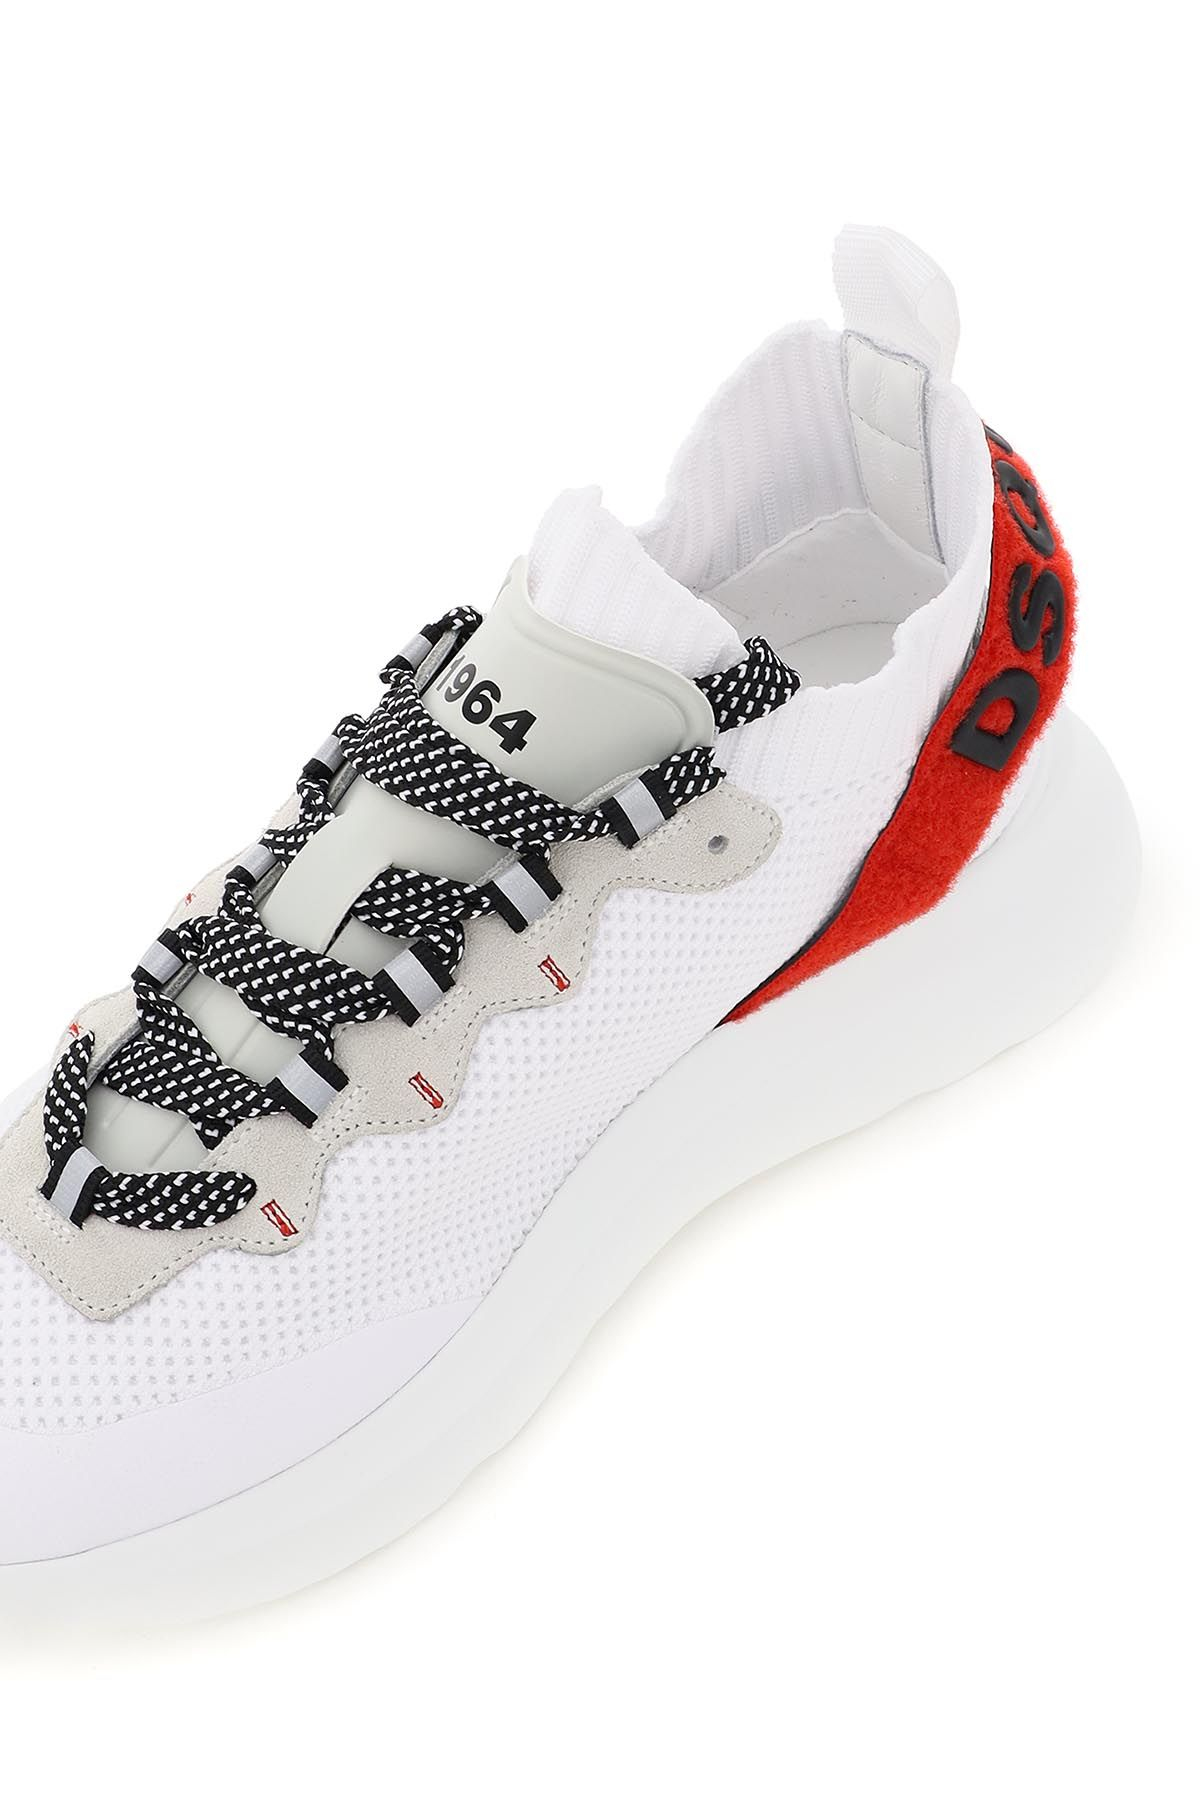 dsquared2 shoes women speedster knit sneakers